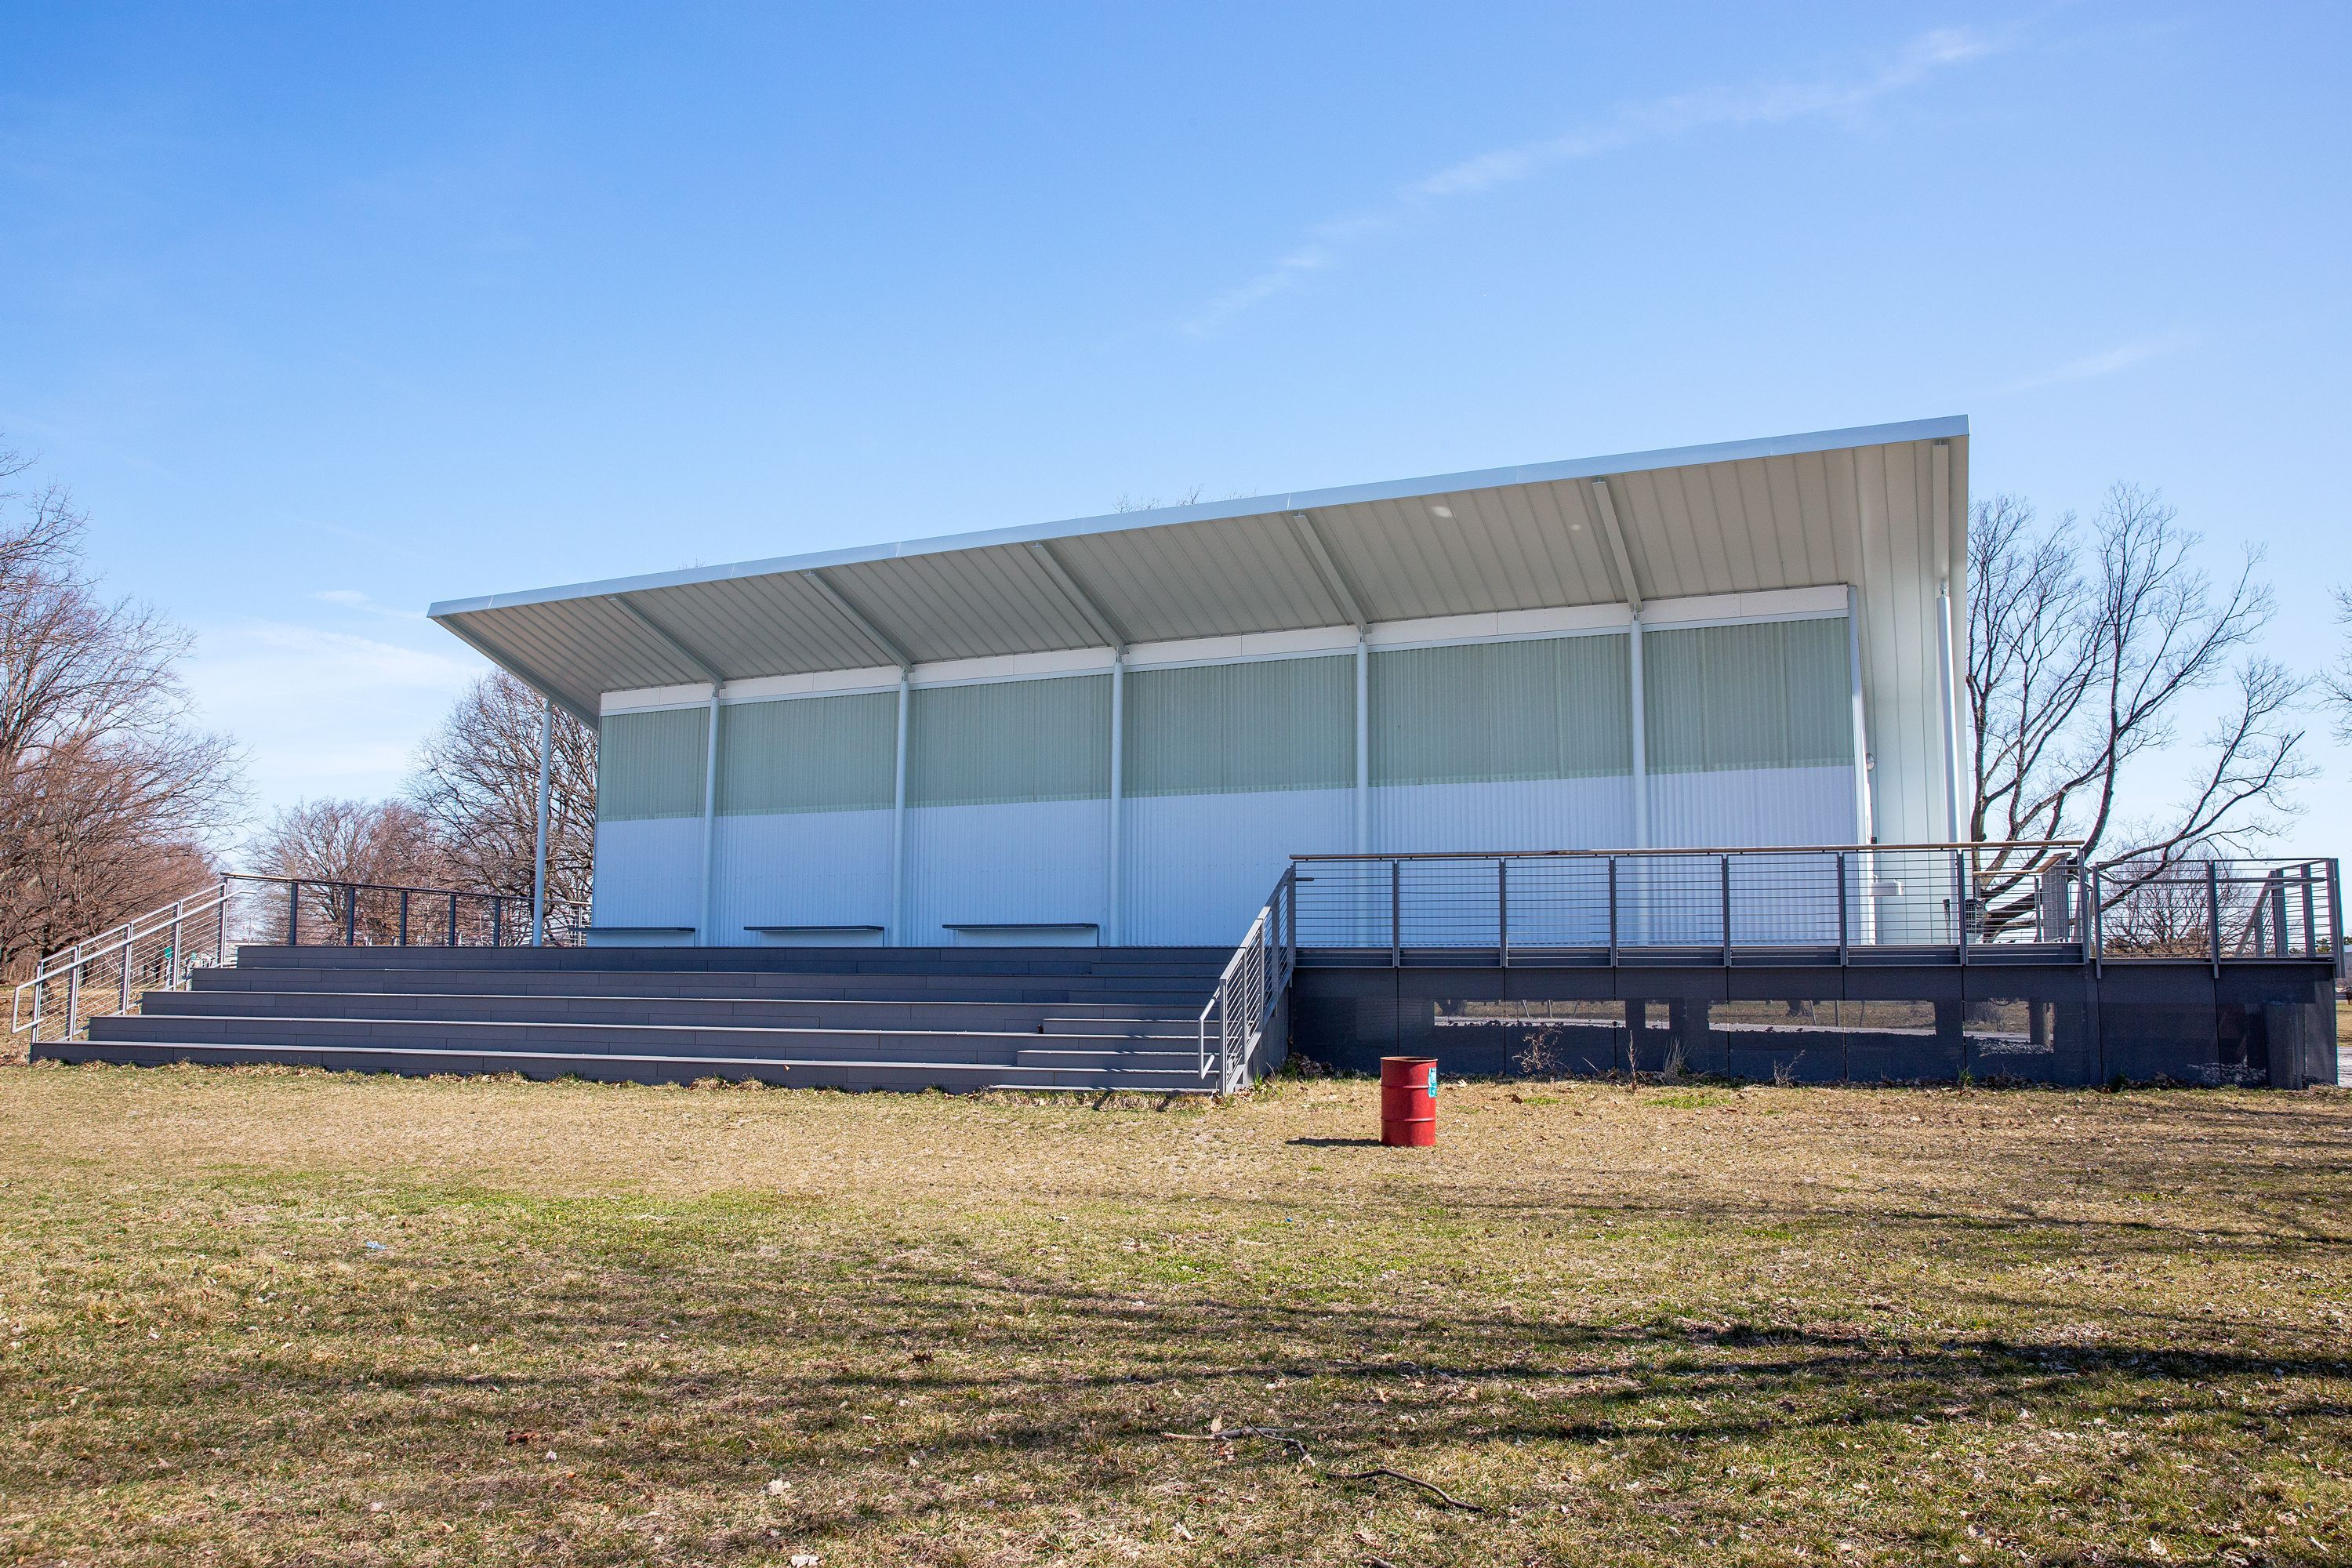 A public bathroom in Ferry Point Park in The Bronx cost nearly $5 million to construct, March 27, 2019.